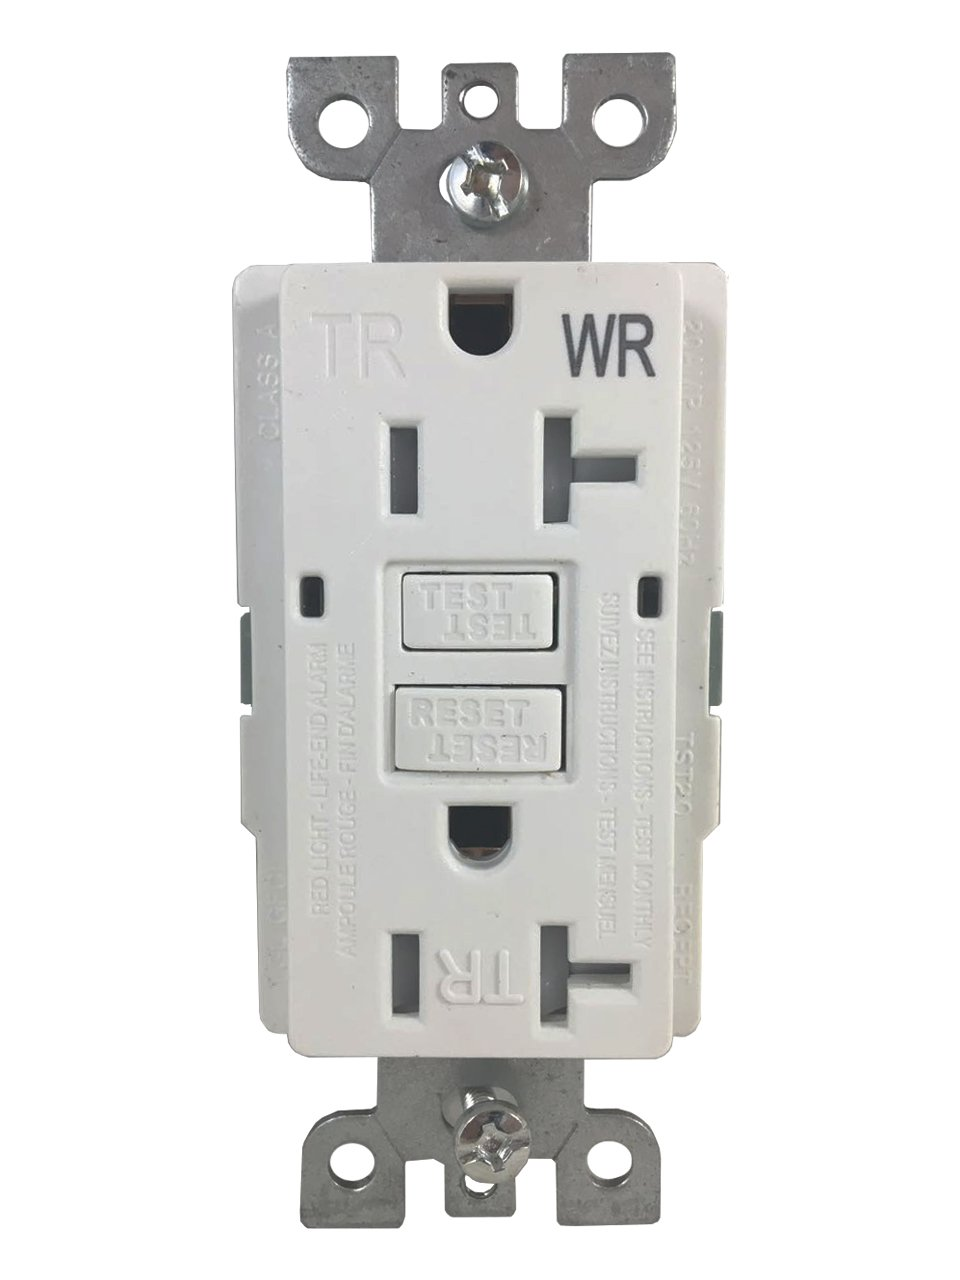 BYBON 20 AMP (10 PACK) Duplex Self-Test Tamper Resistant & Weather Resistant (TR/WR) GFCI Receptacle Outlet,Two LED Light Indicator,Wallplate and screws included,White,UL 2015 (10 PACK) by BYBON (Image #2)